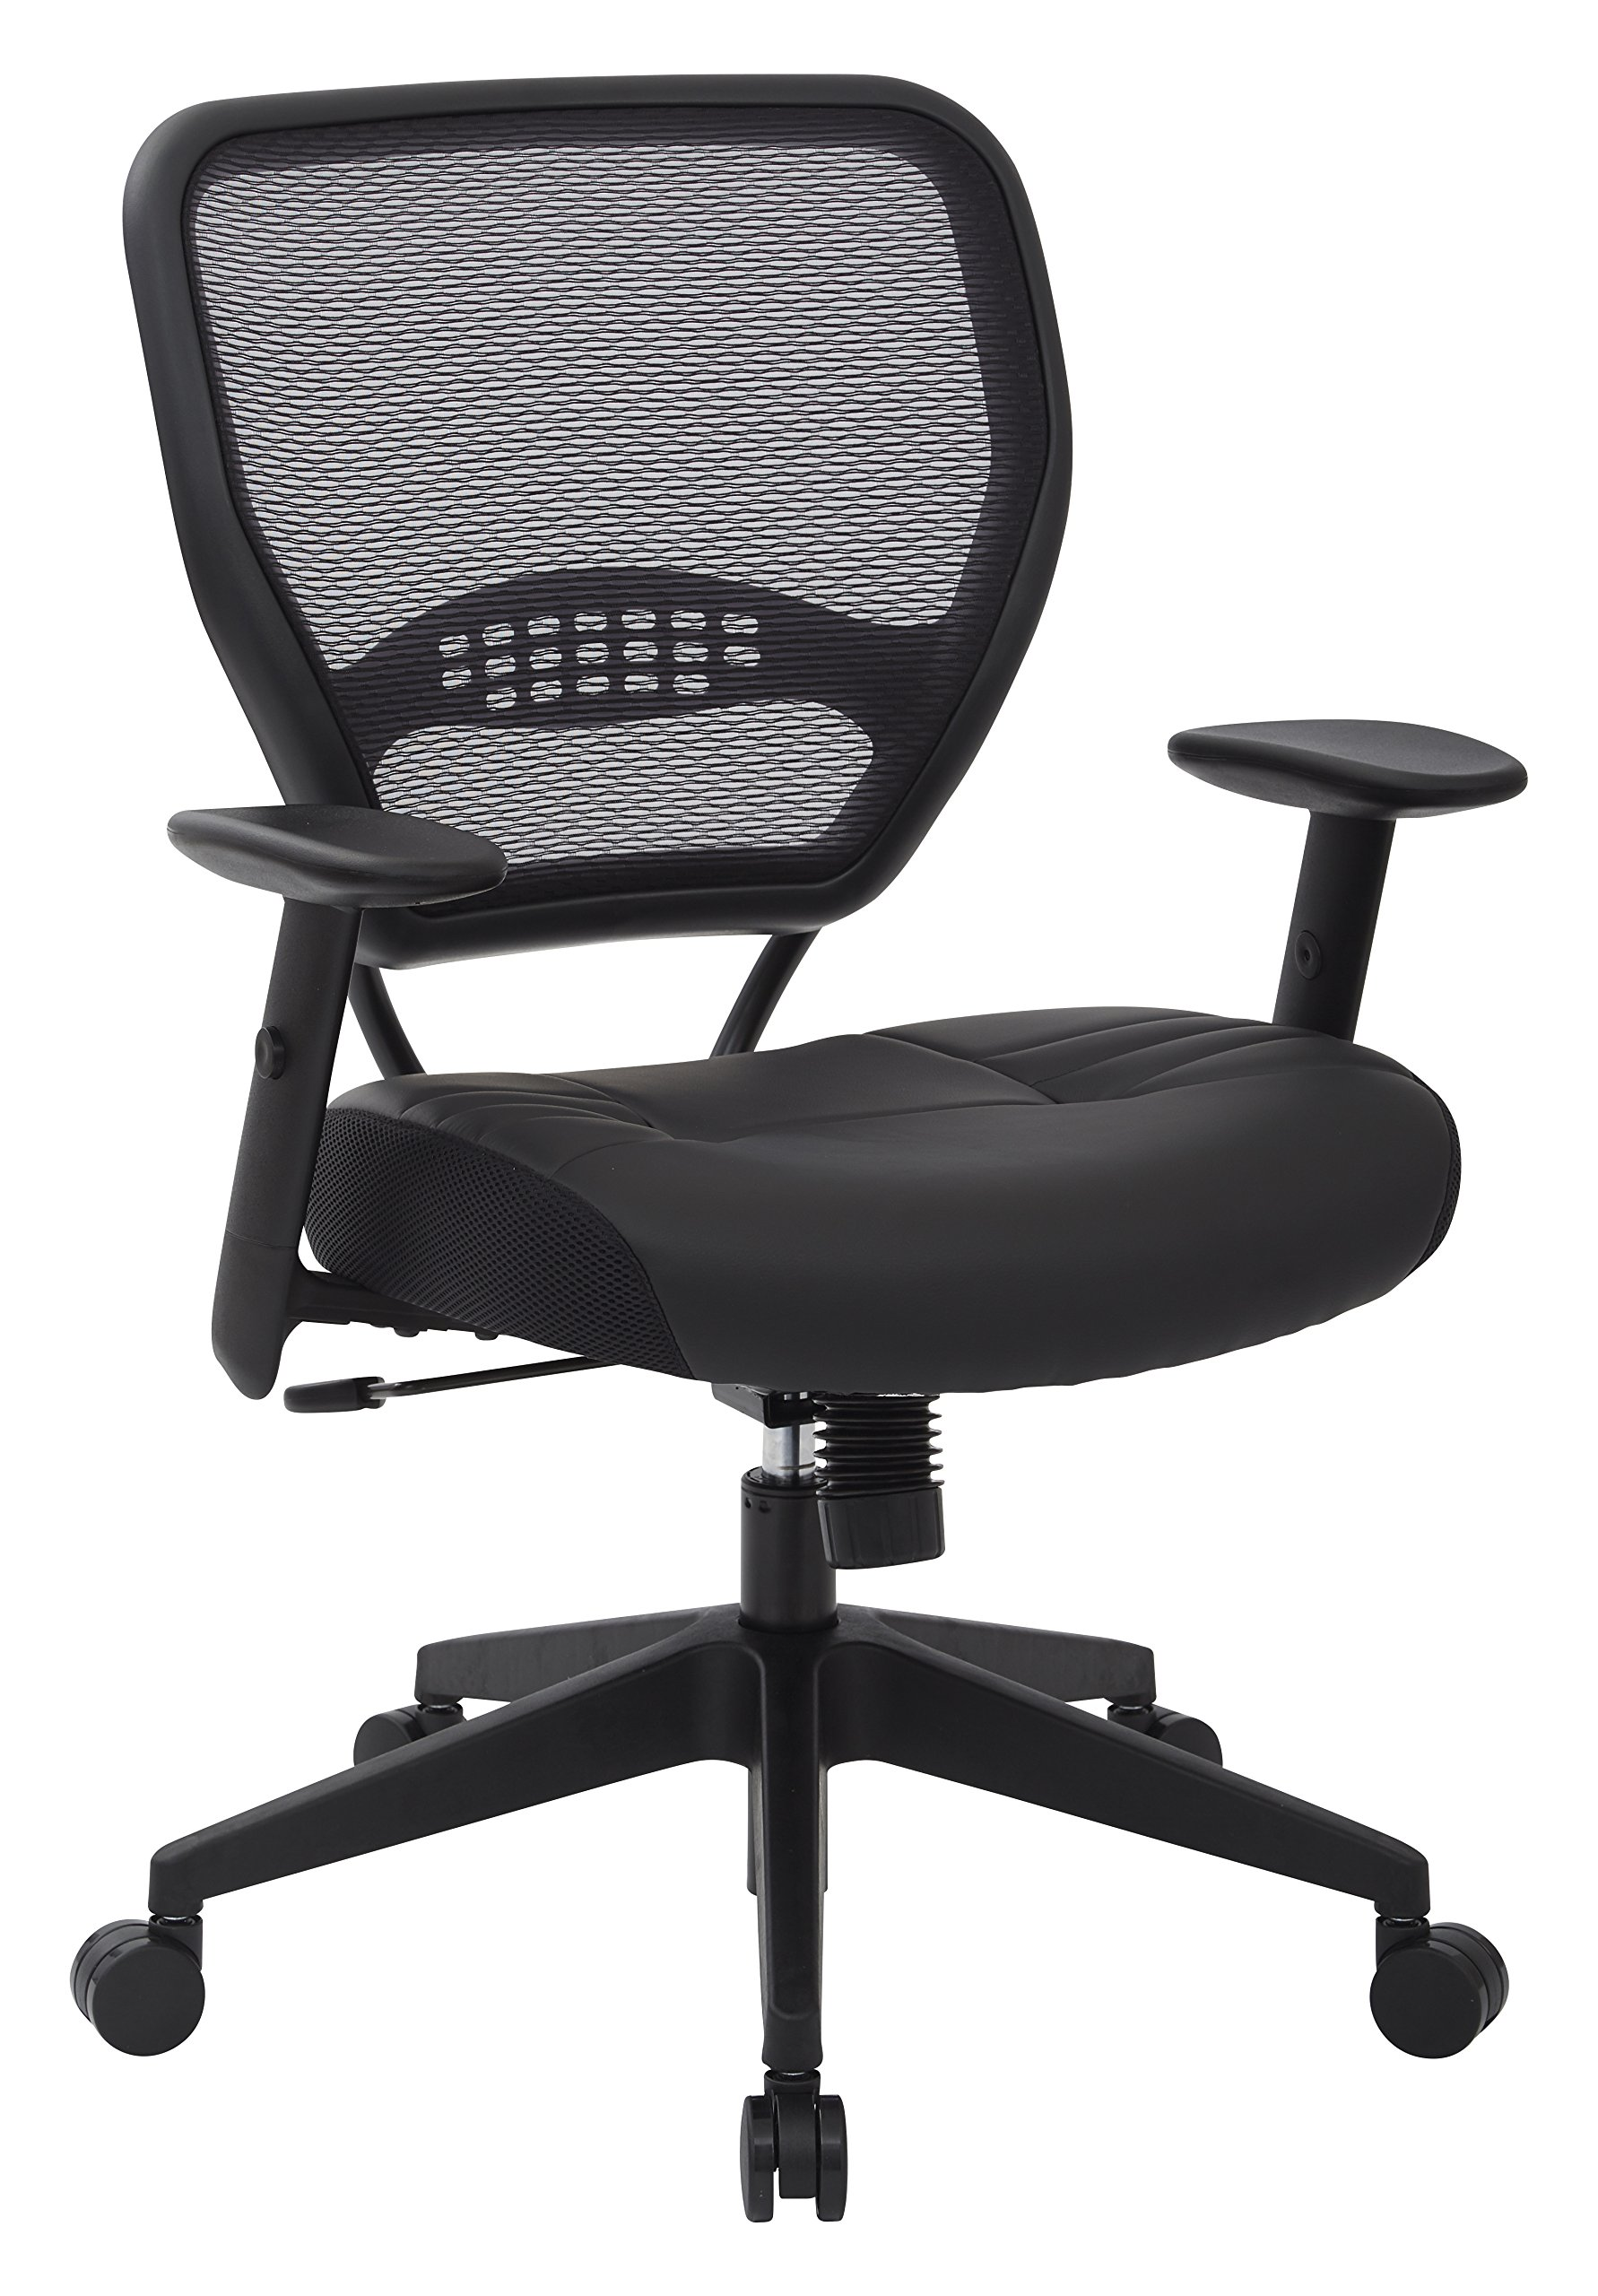 SPACE Seating Professional AirGrid Dark Back and Padded Black Eco Leather Seat, 2-to-1 Synchro Tilt Control, Adjustable Arms and Tilt Tension with Nylon Base Managers Chair by Space Seating